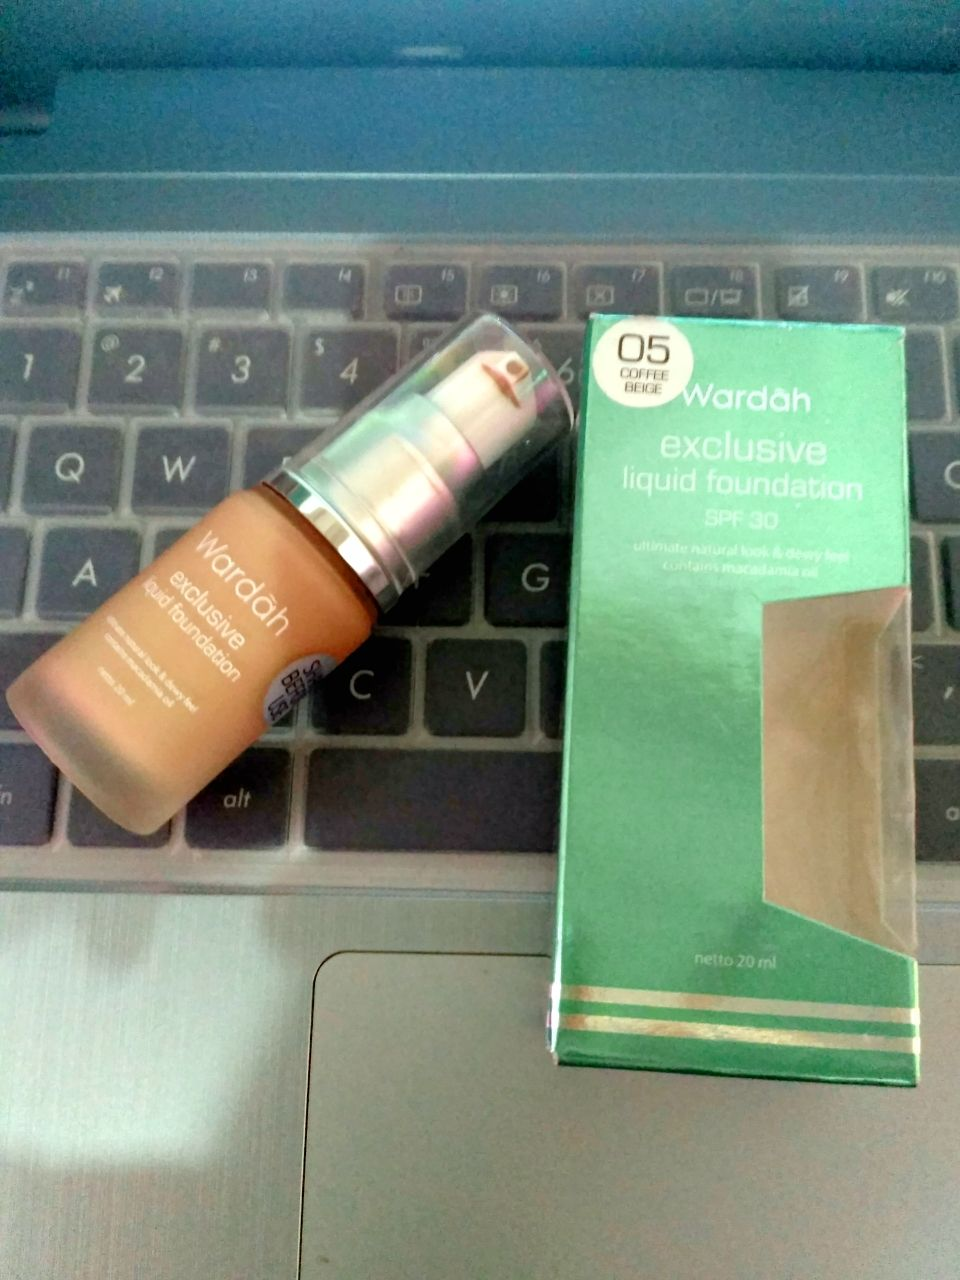 image review Wardah Exclusive Liquid Foundation